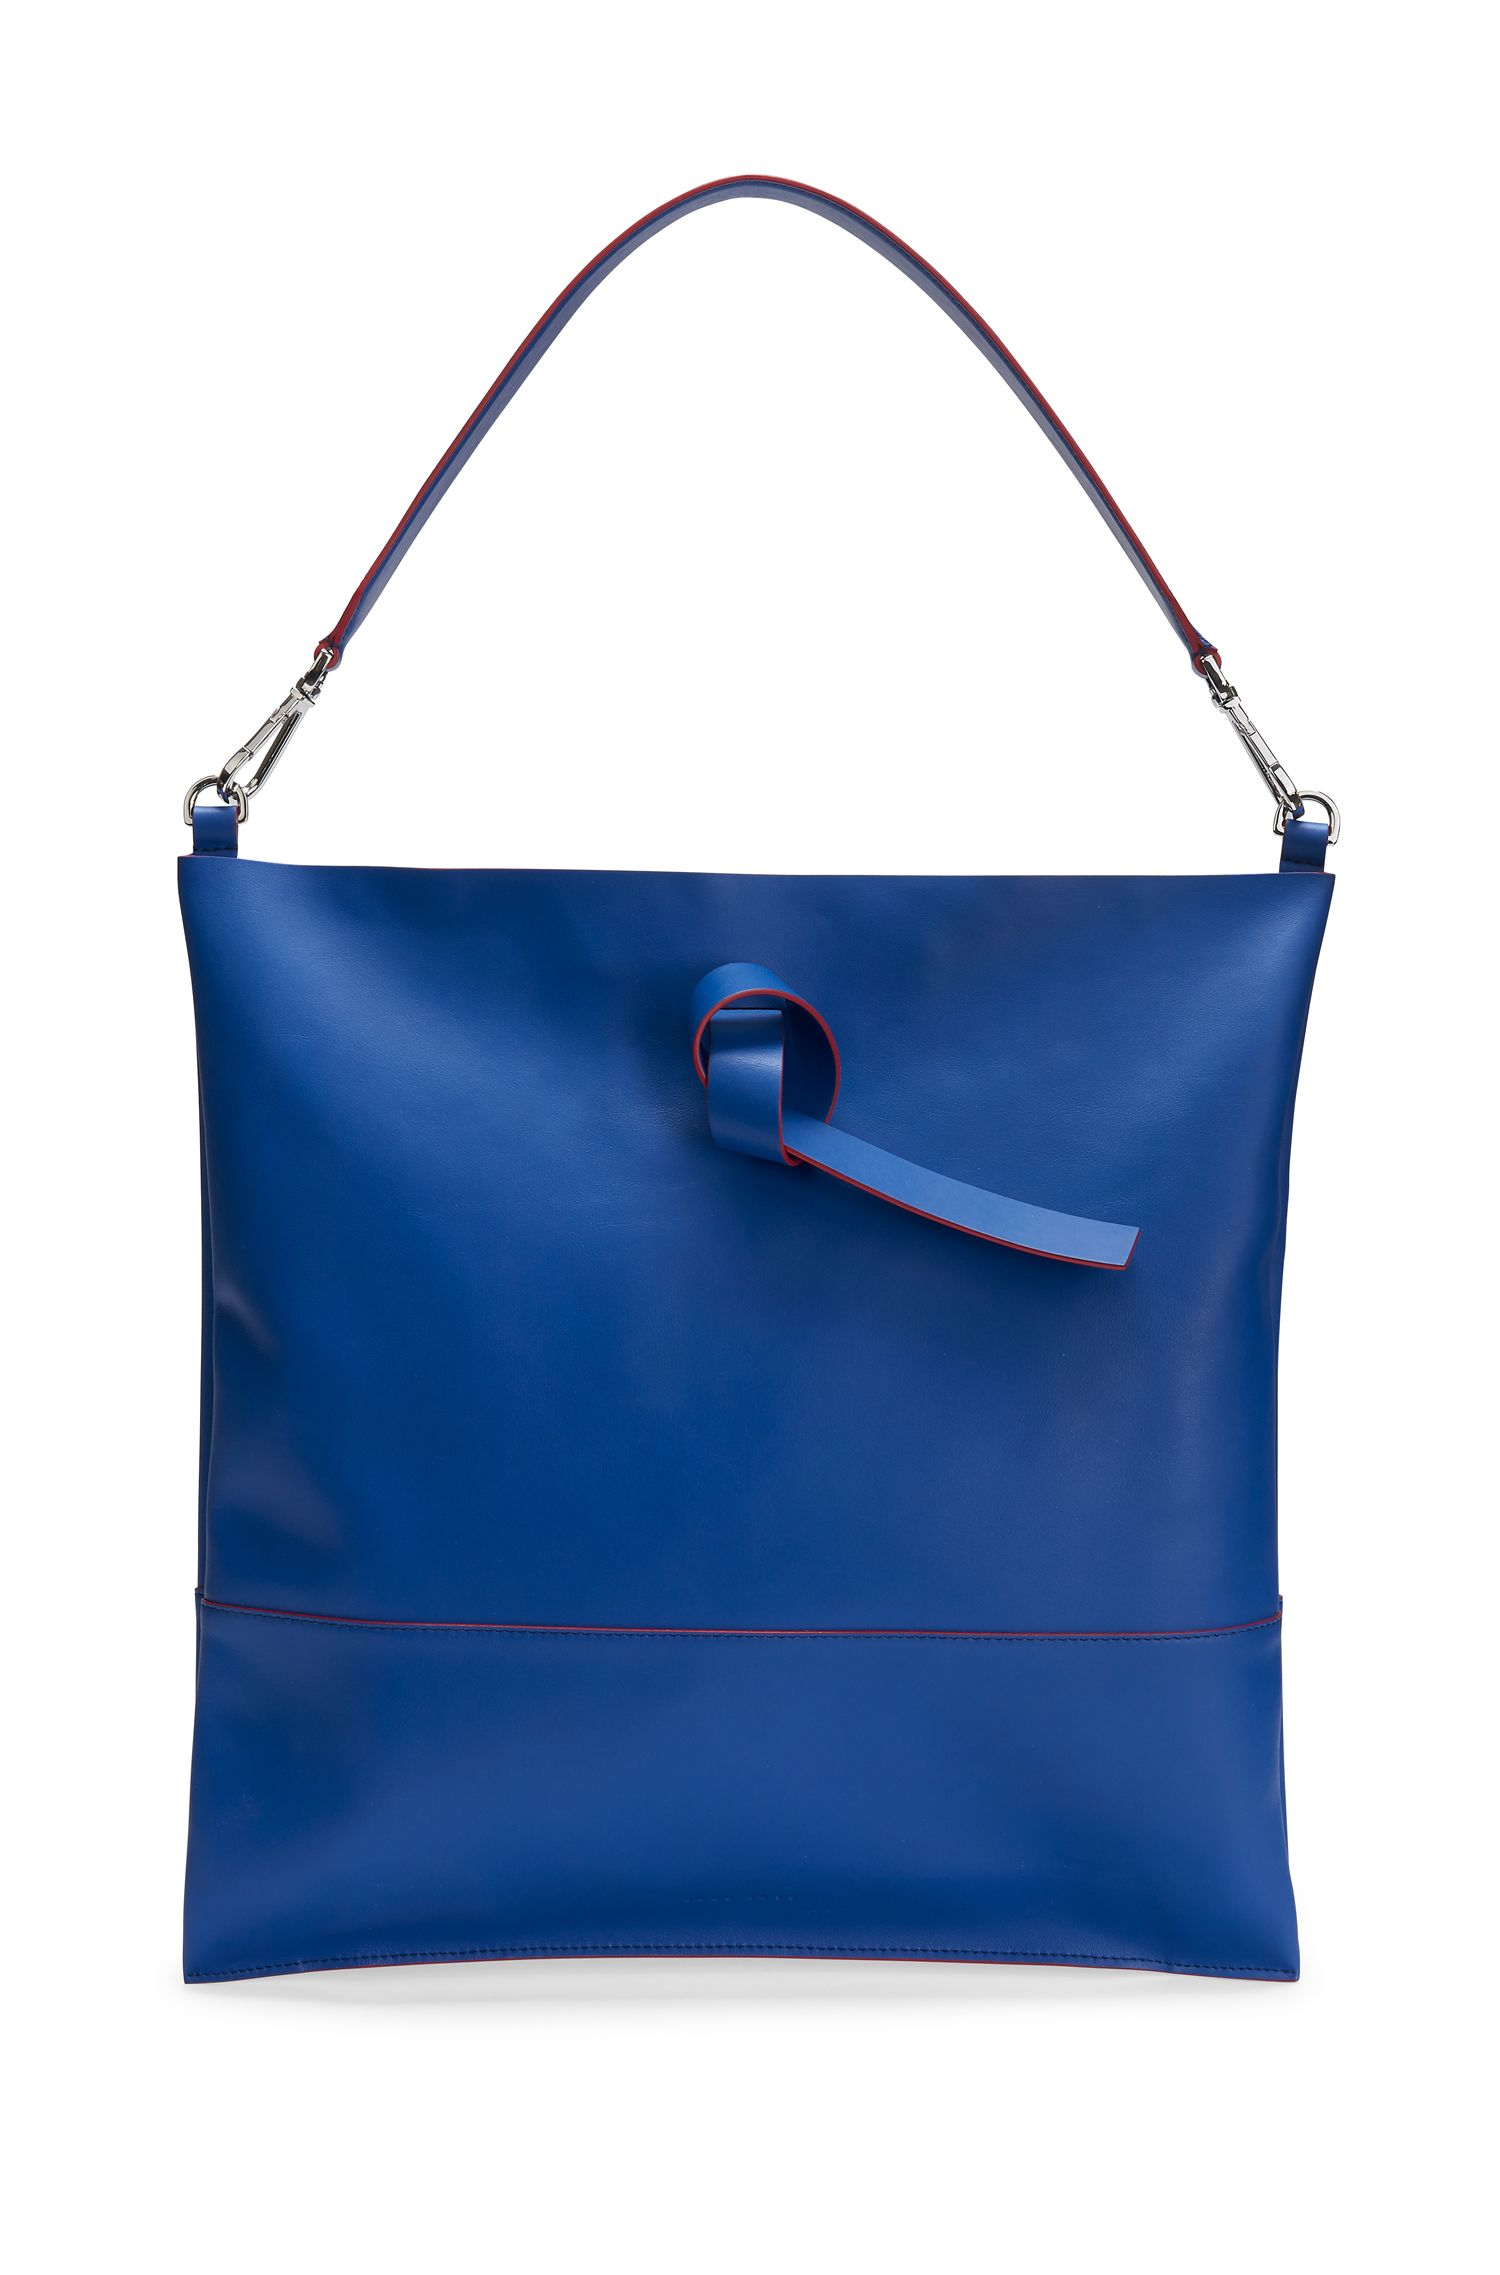 'Modern Day Tote' | Italian Leather Handbag, Detachable Strap